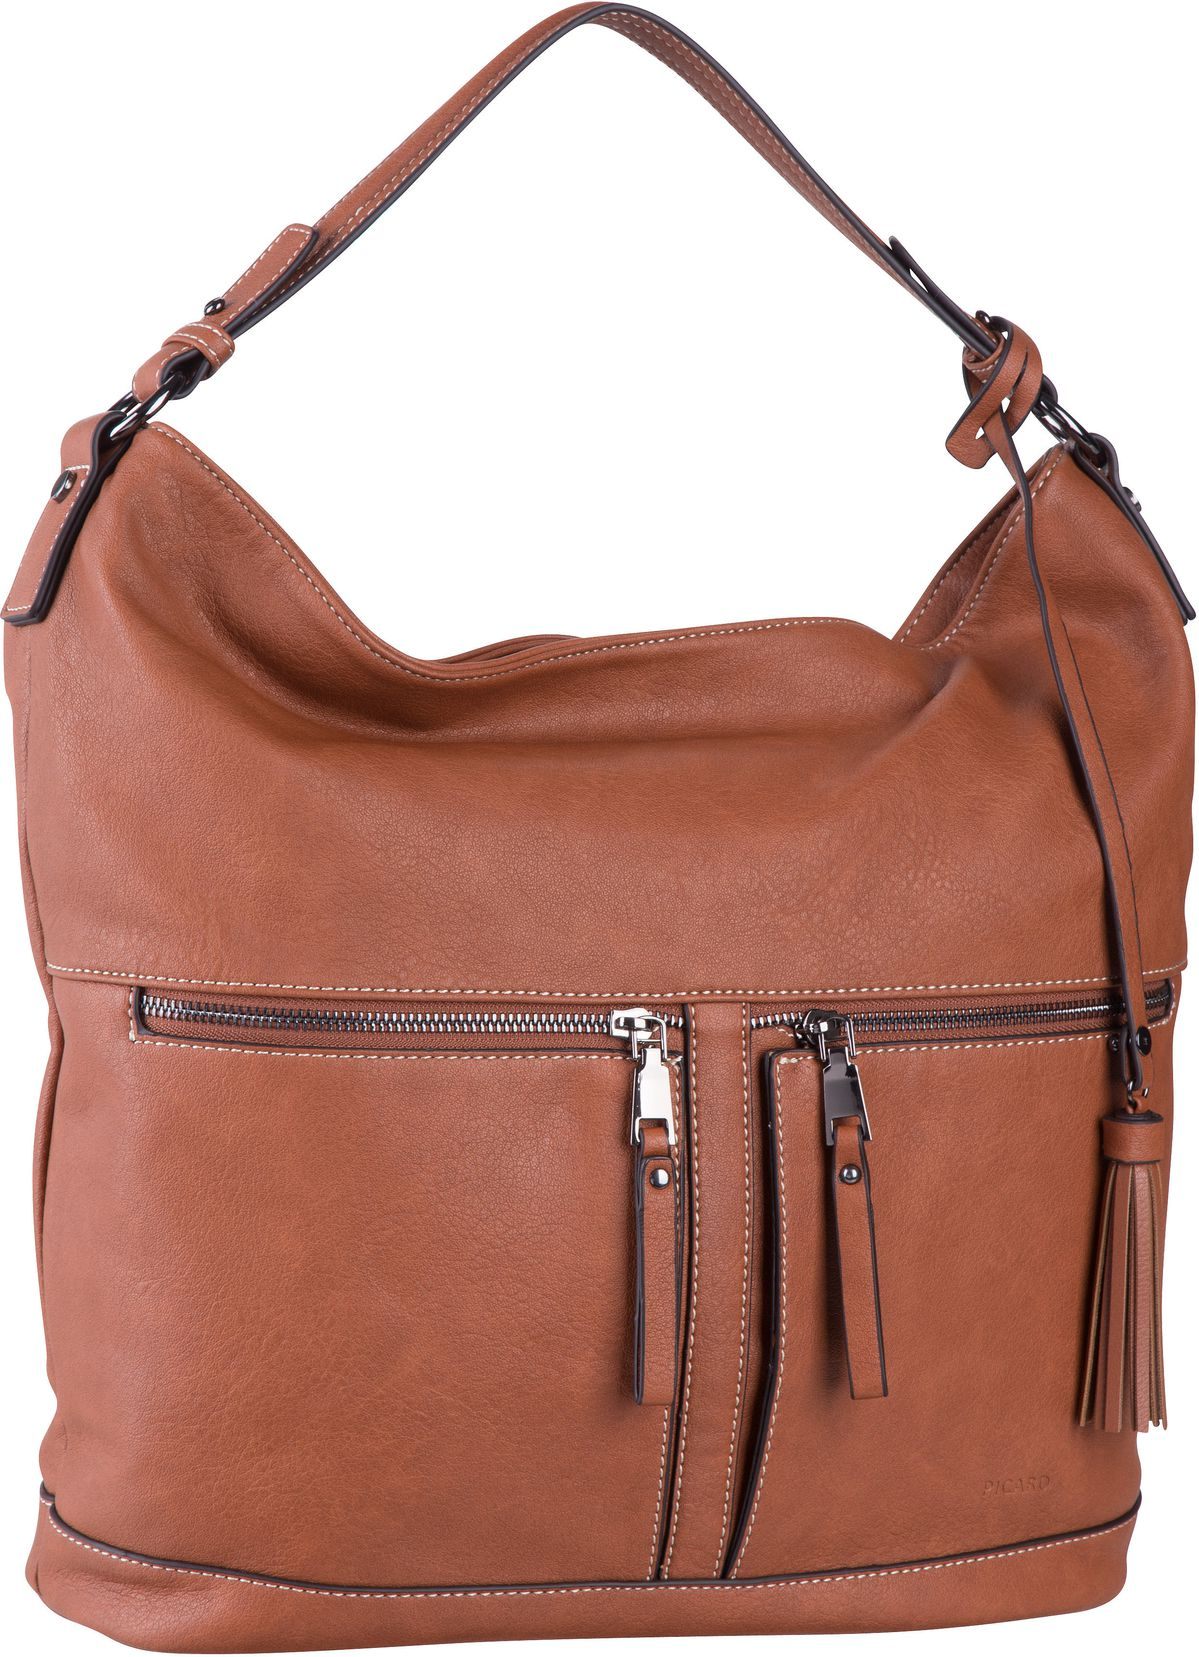 Handtasche Mellow 2742 Whisky